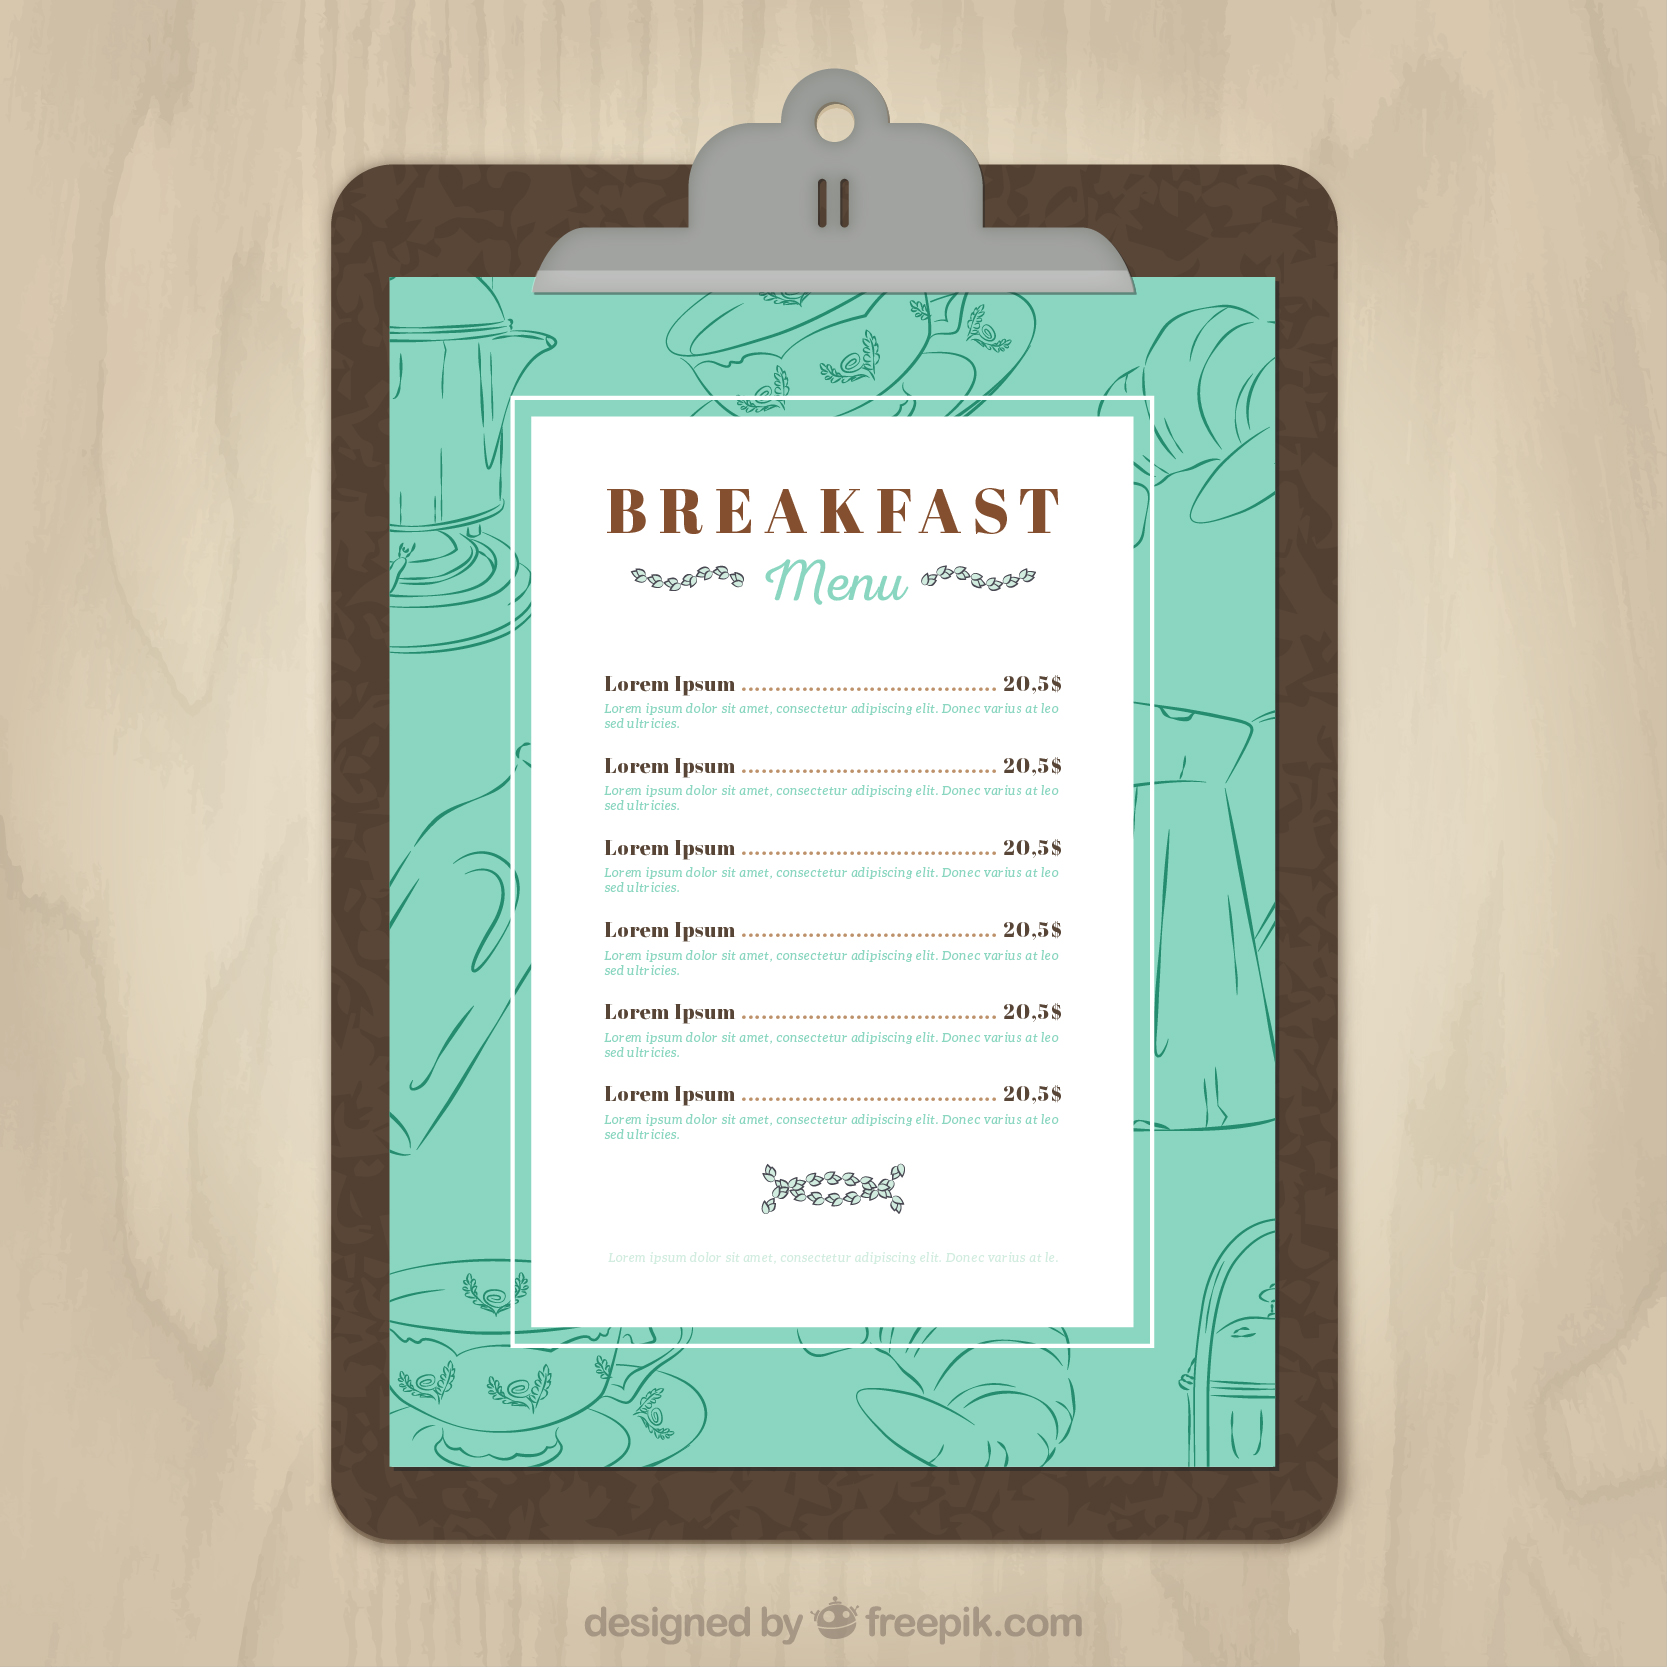 Here Is Preview Of Another Sample Breakfast Menu Template In PSD Format,